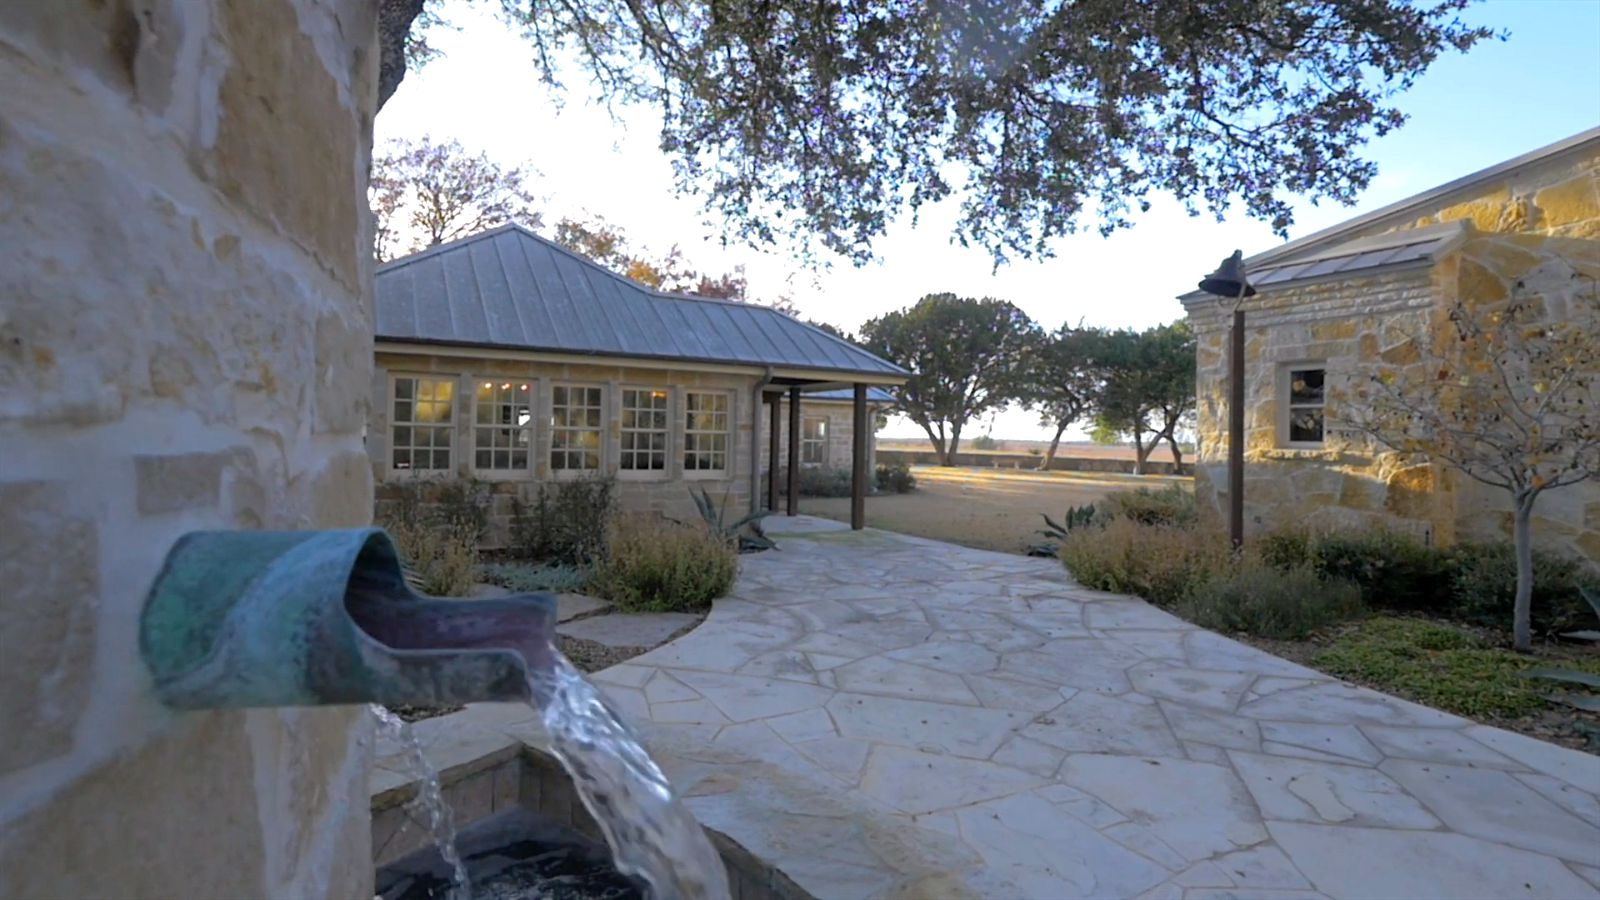 The main ranch house is two years old.